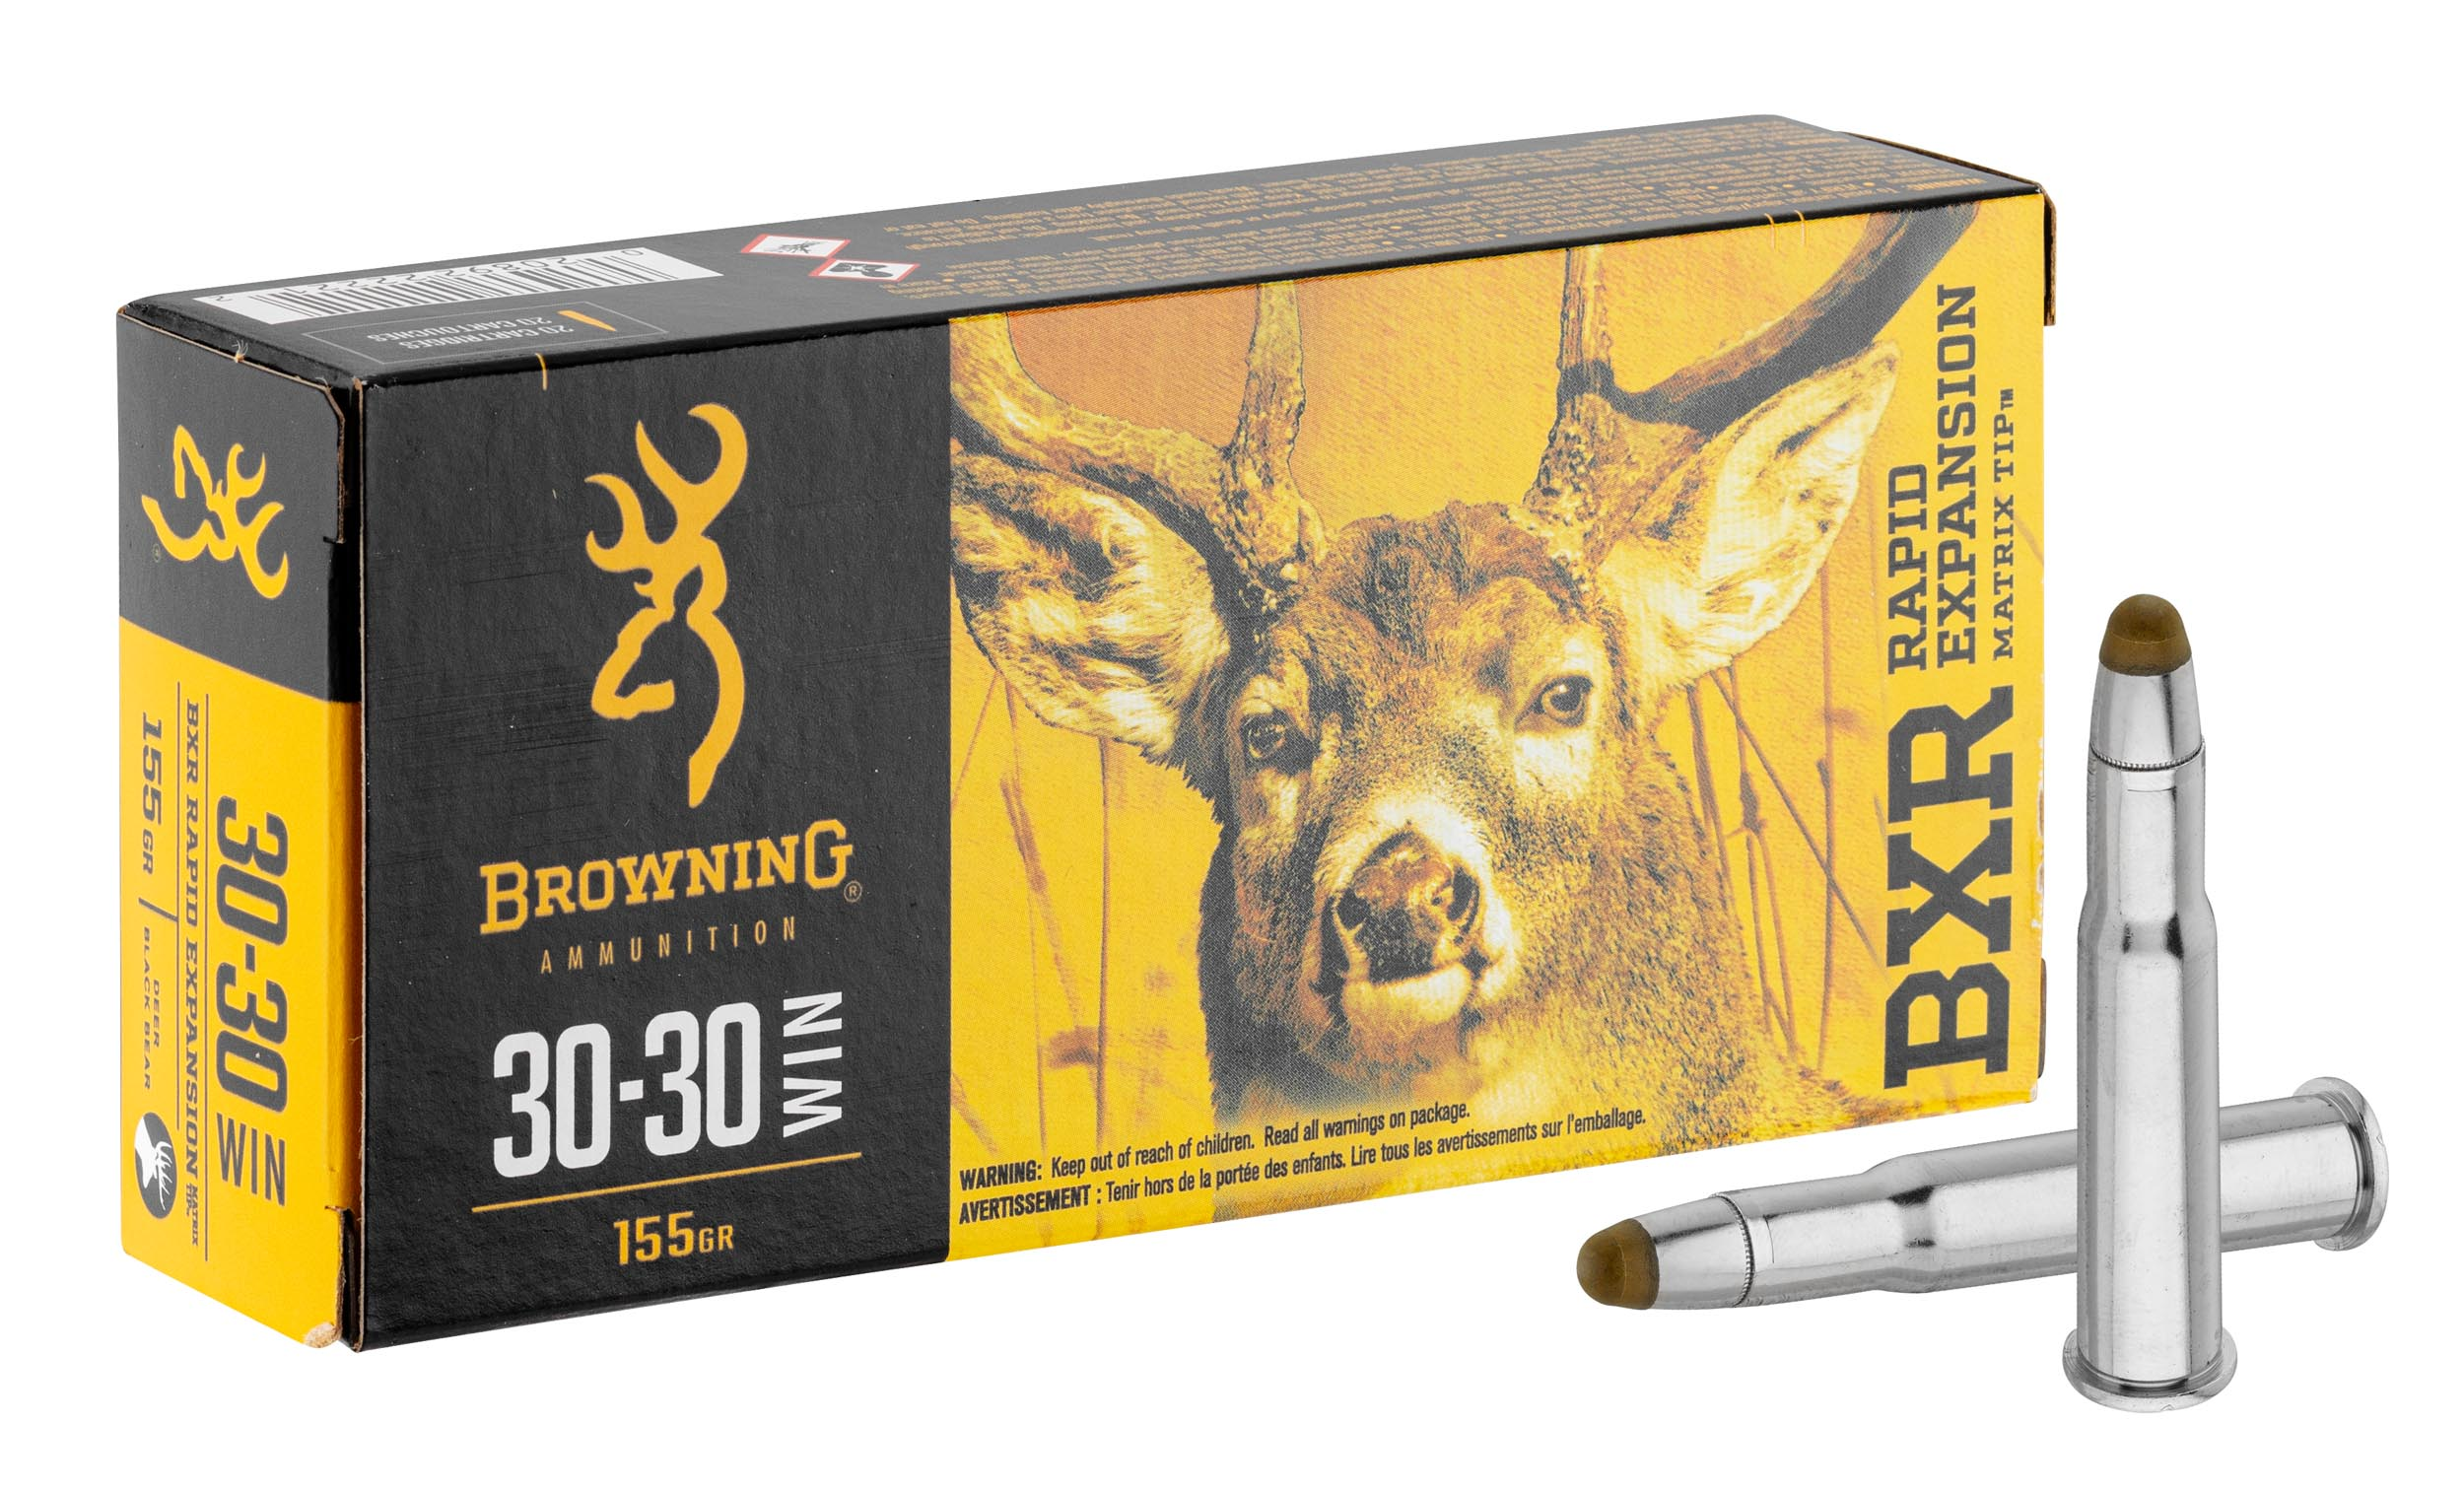 BW1333 Munition grande chasse Browning cal. 30-30 Win - BW1333